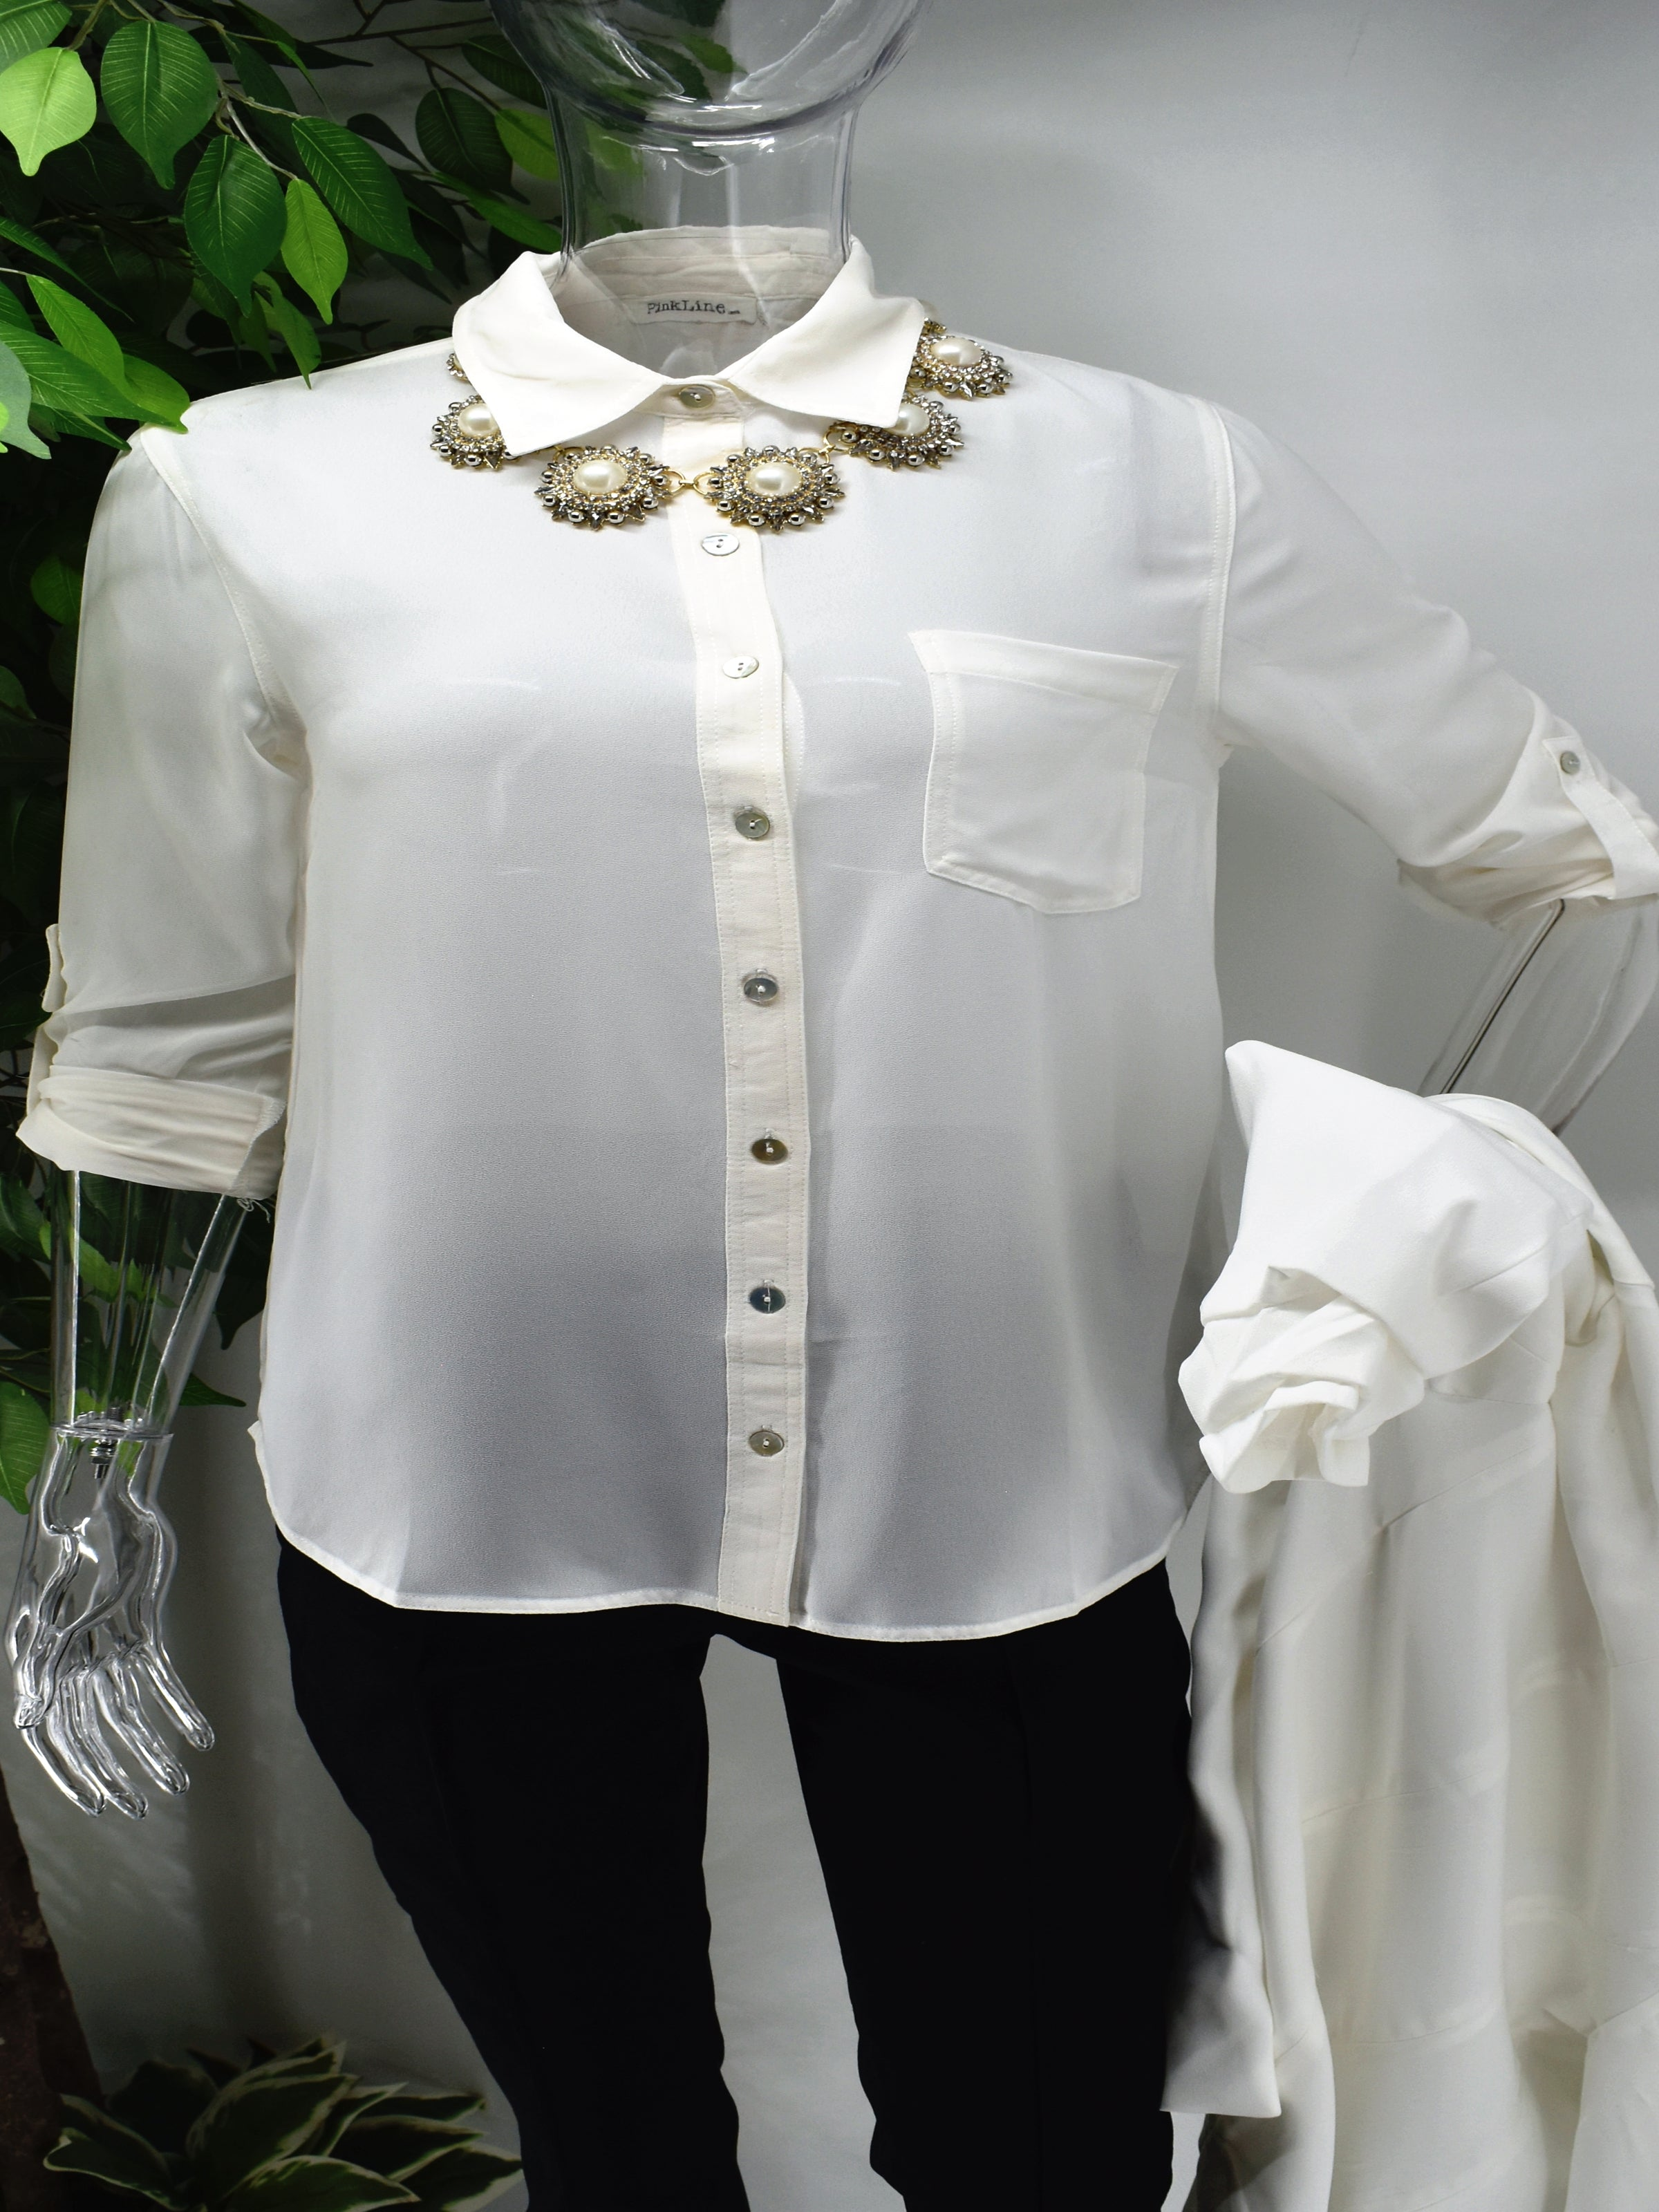 Enjoy an elegant design that never fades with our classic Bayla shirt blouse. Our Bayla is a white button front shirt blouse loose in fit with a classic rolled cuffed sleeve.